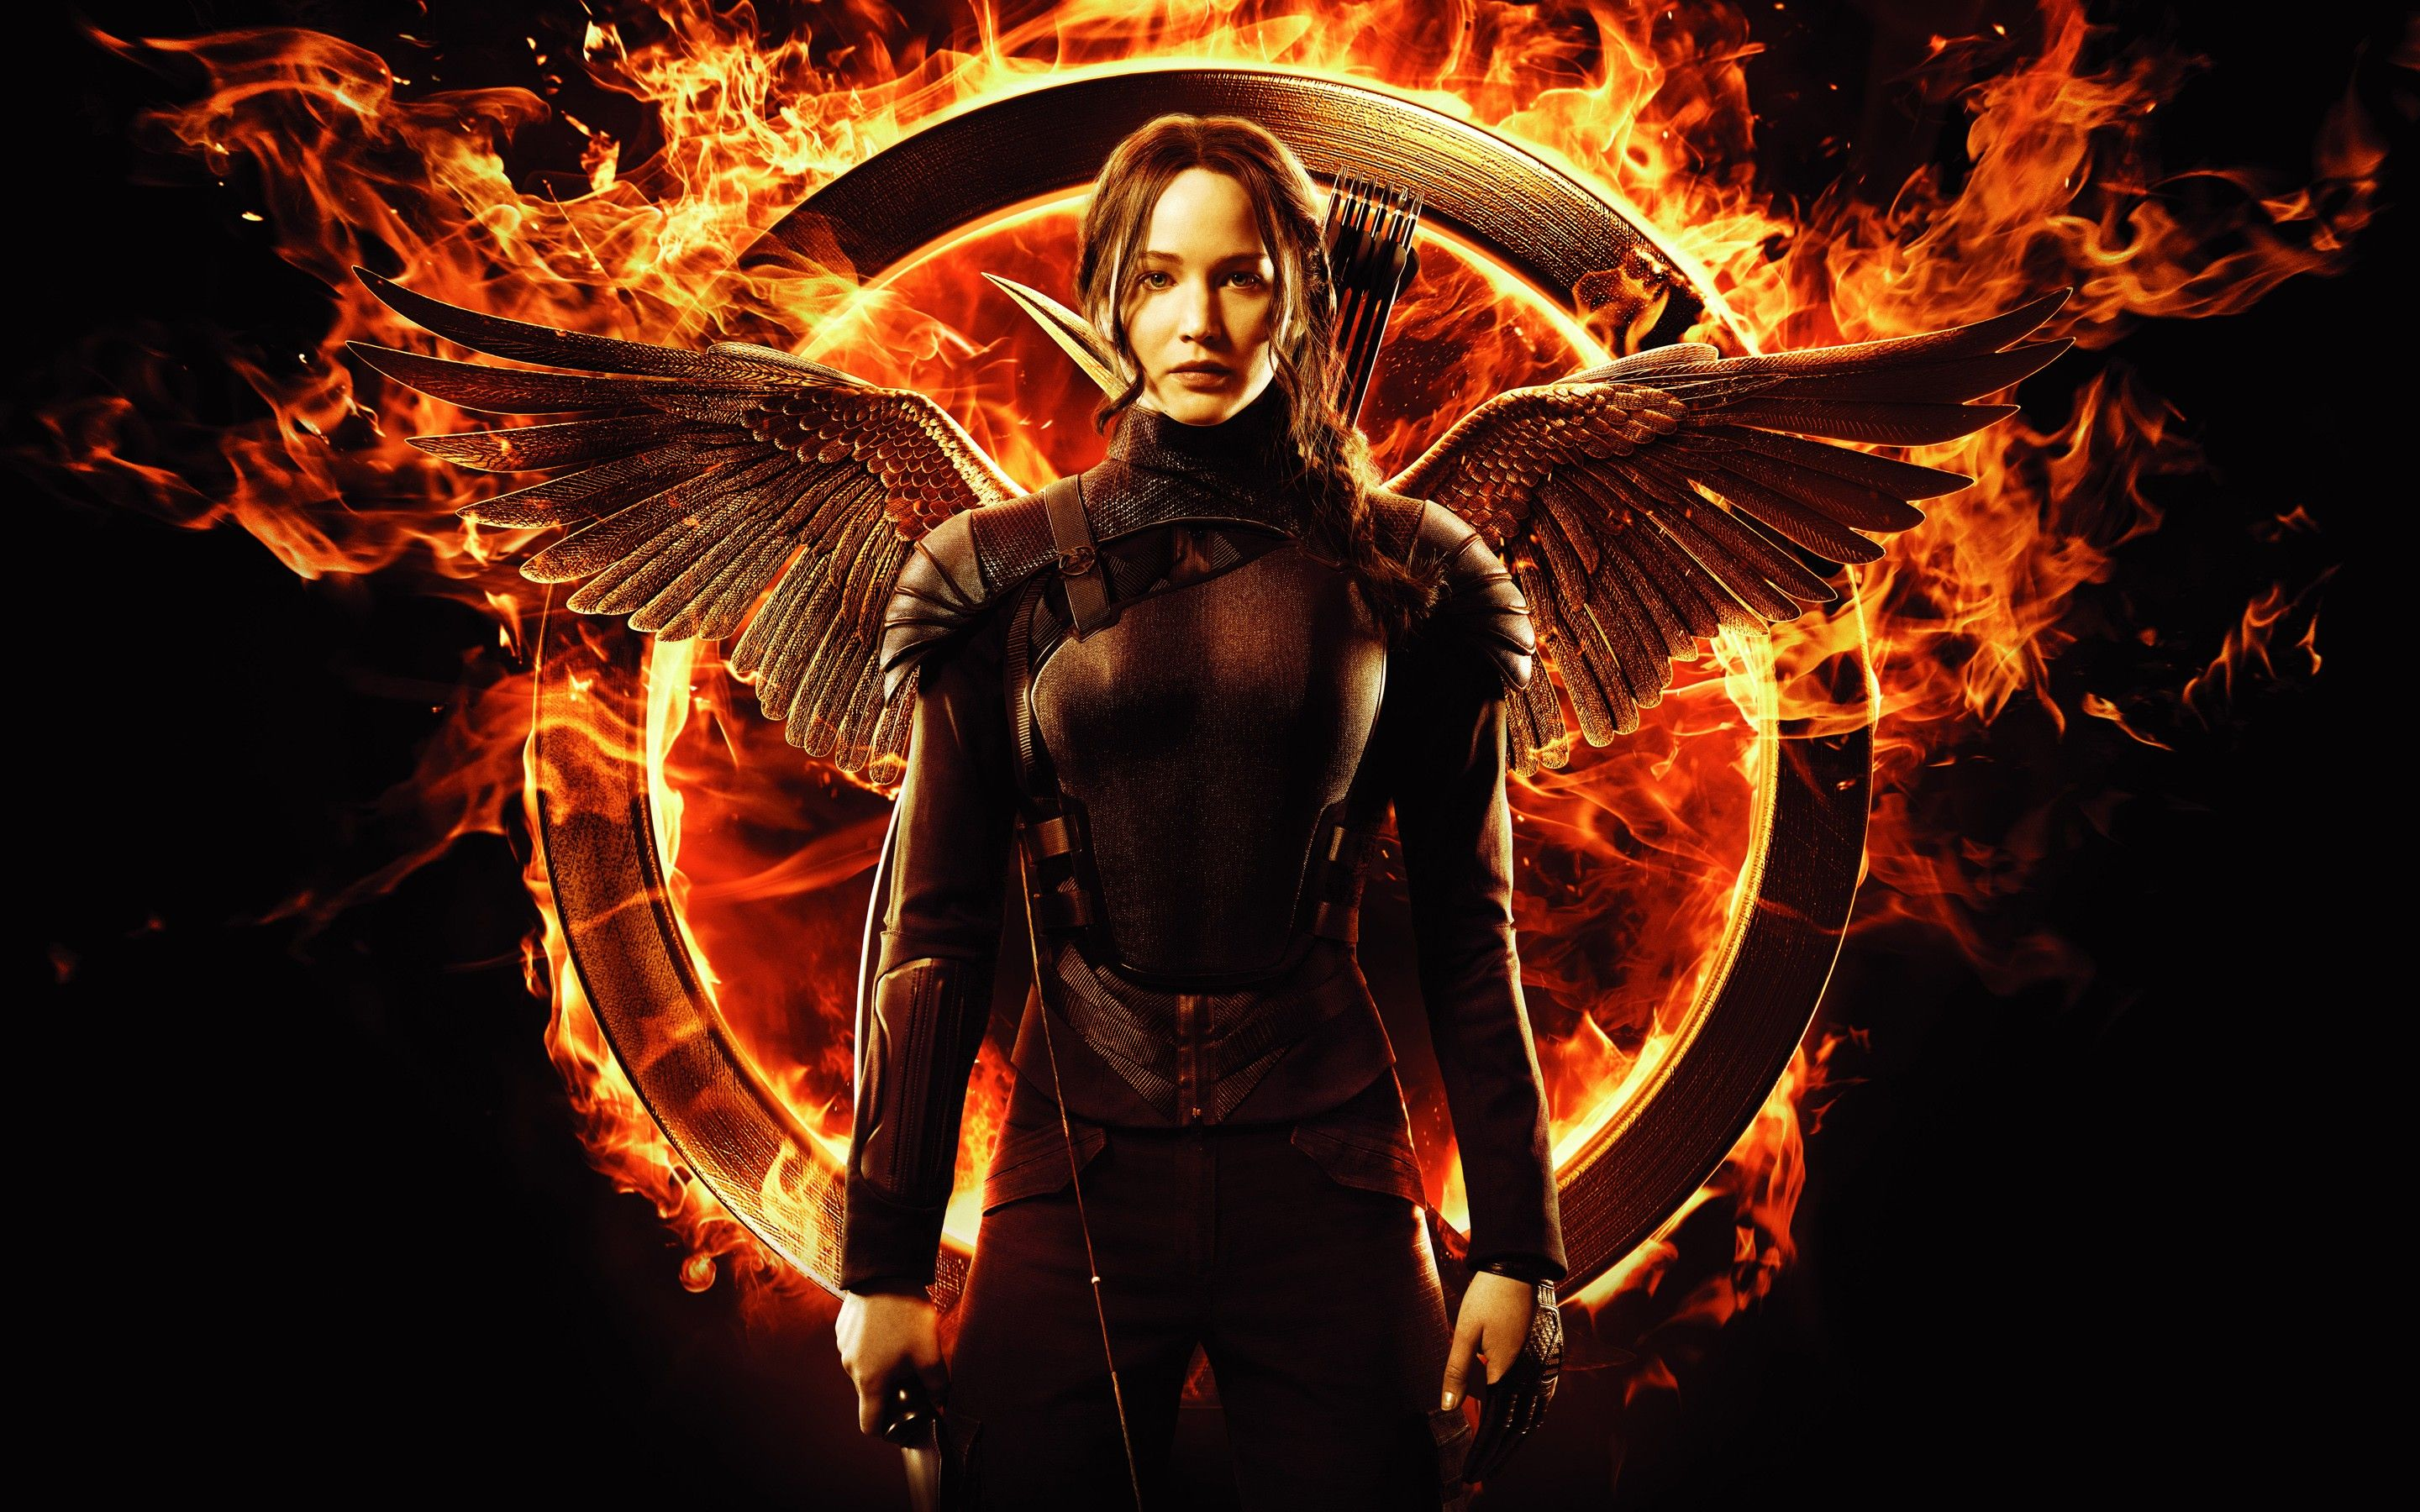 Film Review - The Hunger Games: Mockingjay – Part 1